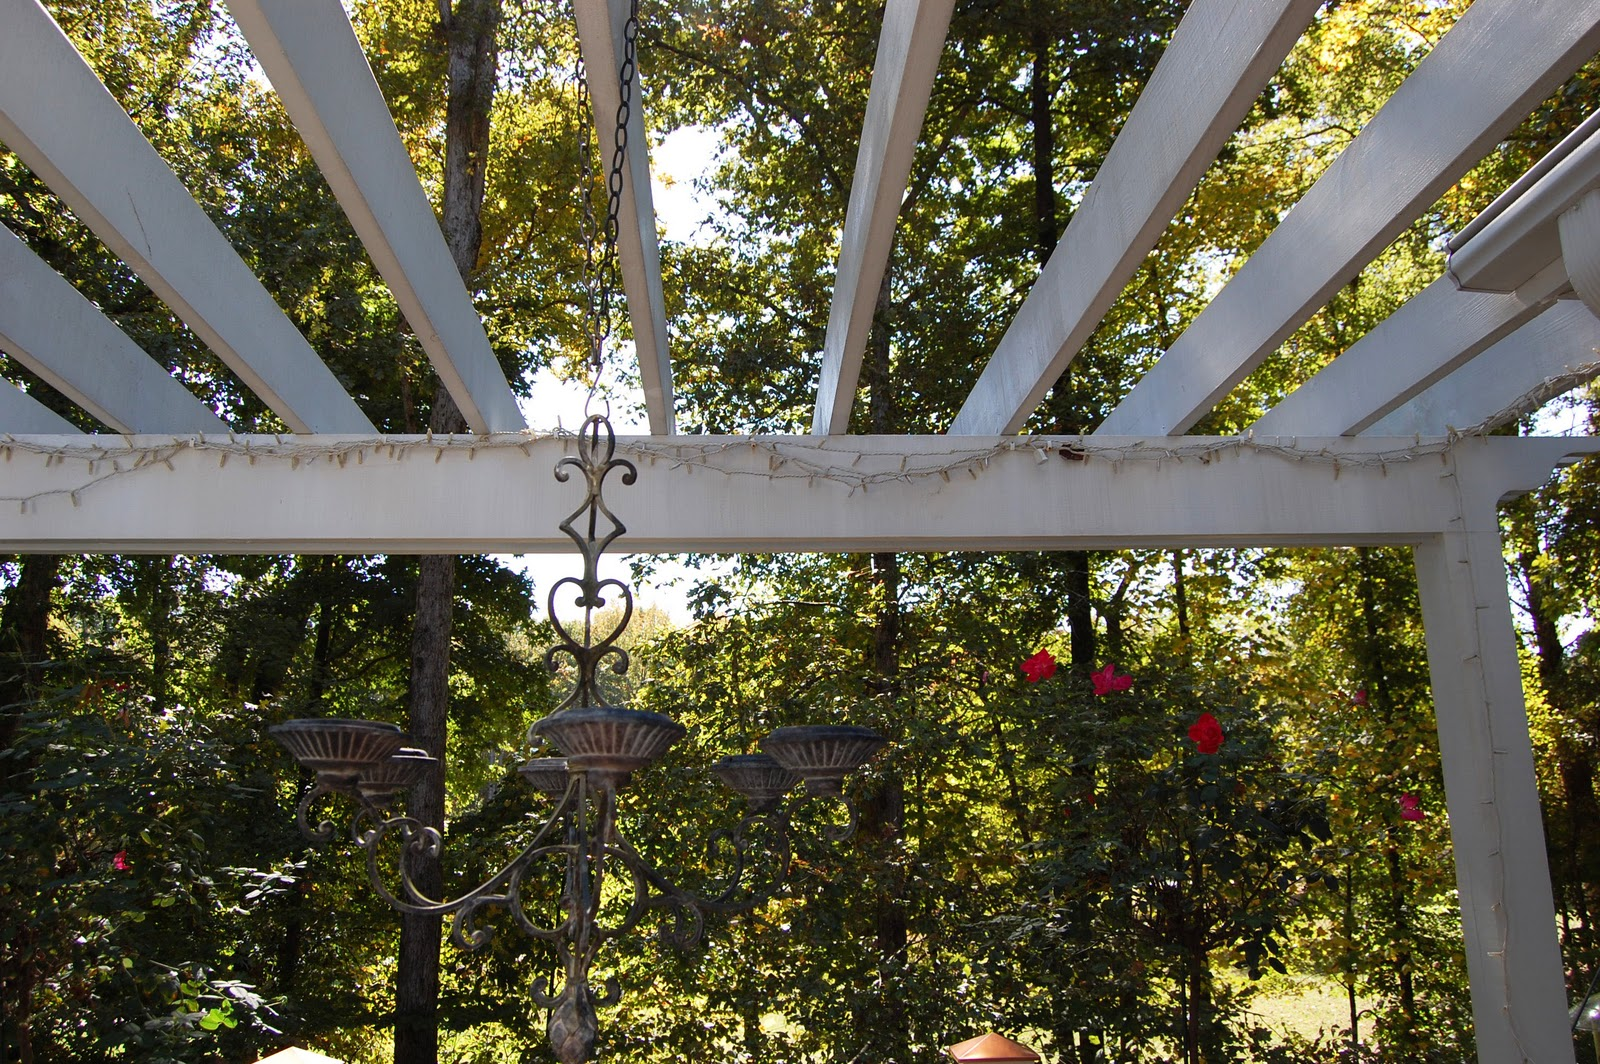 Repairing String Lights on the Pergola